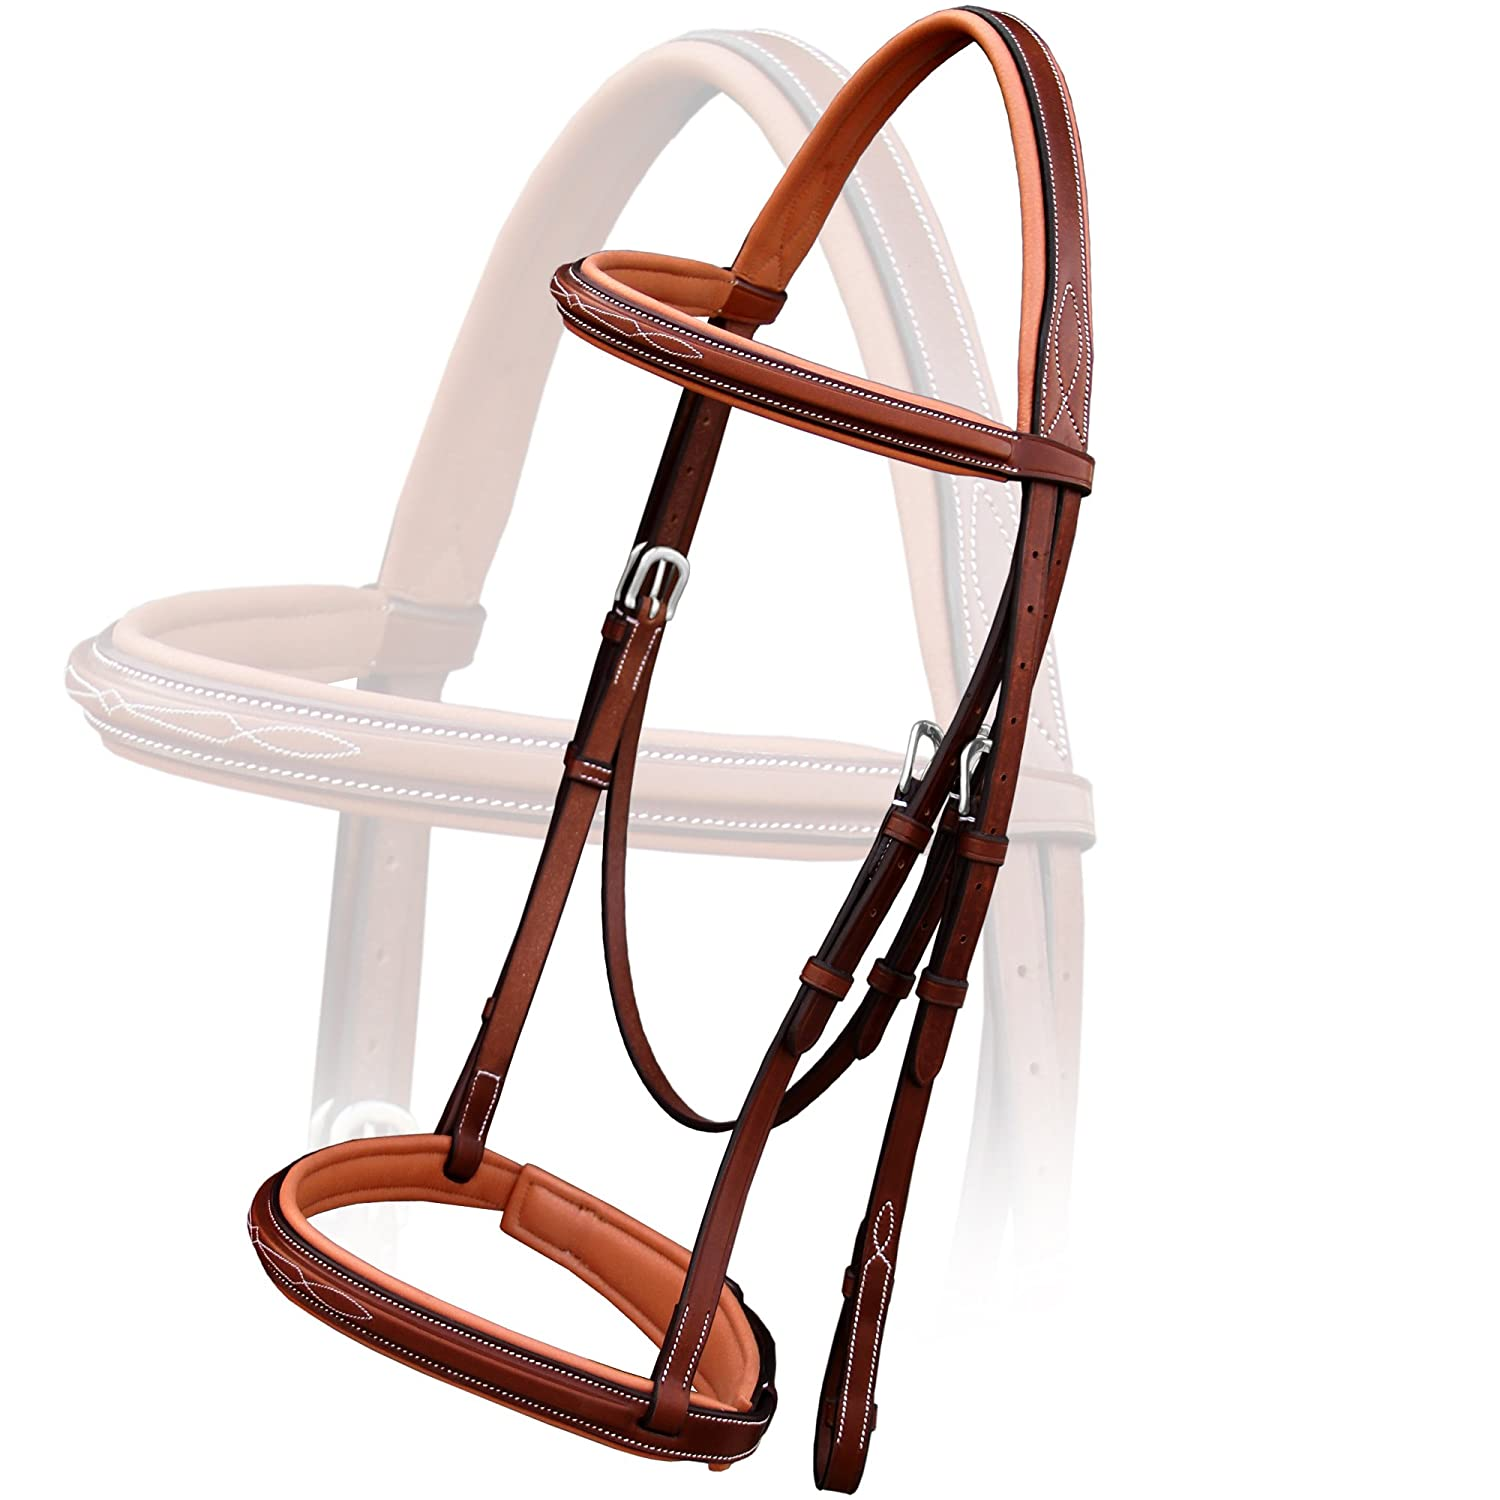 Oak Brown (Reddish Brown) Small (Pony) Oak Brown (Reddish Brown) Small (Pony) Exion Comfort Fancy Padded Leather Bridle with PP Rubber Grip Reins and Stainless Steel Buckles   Equestrian Show Jumping Padded Bridle Set   English Horse Riding Tack   Oak Bro